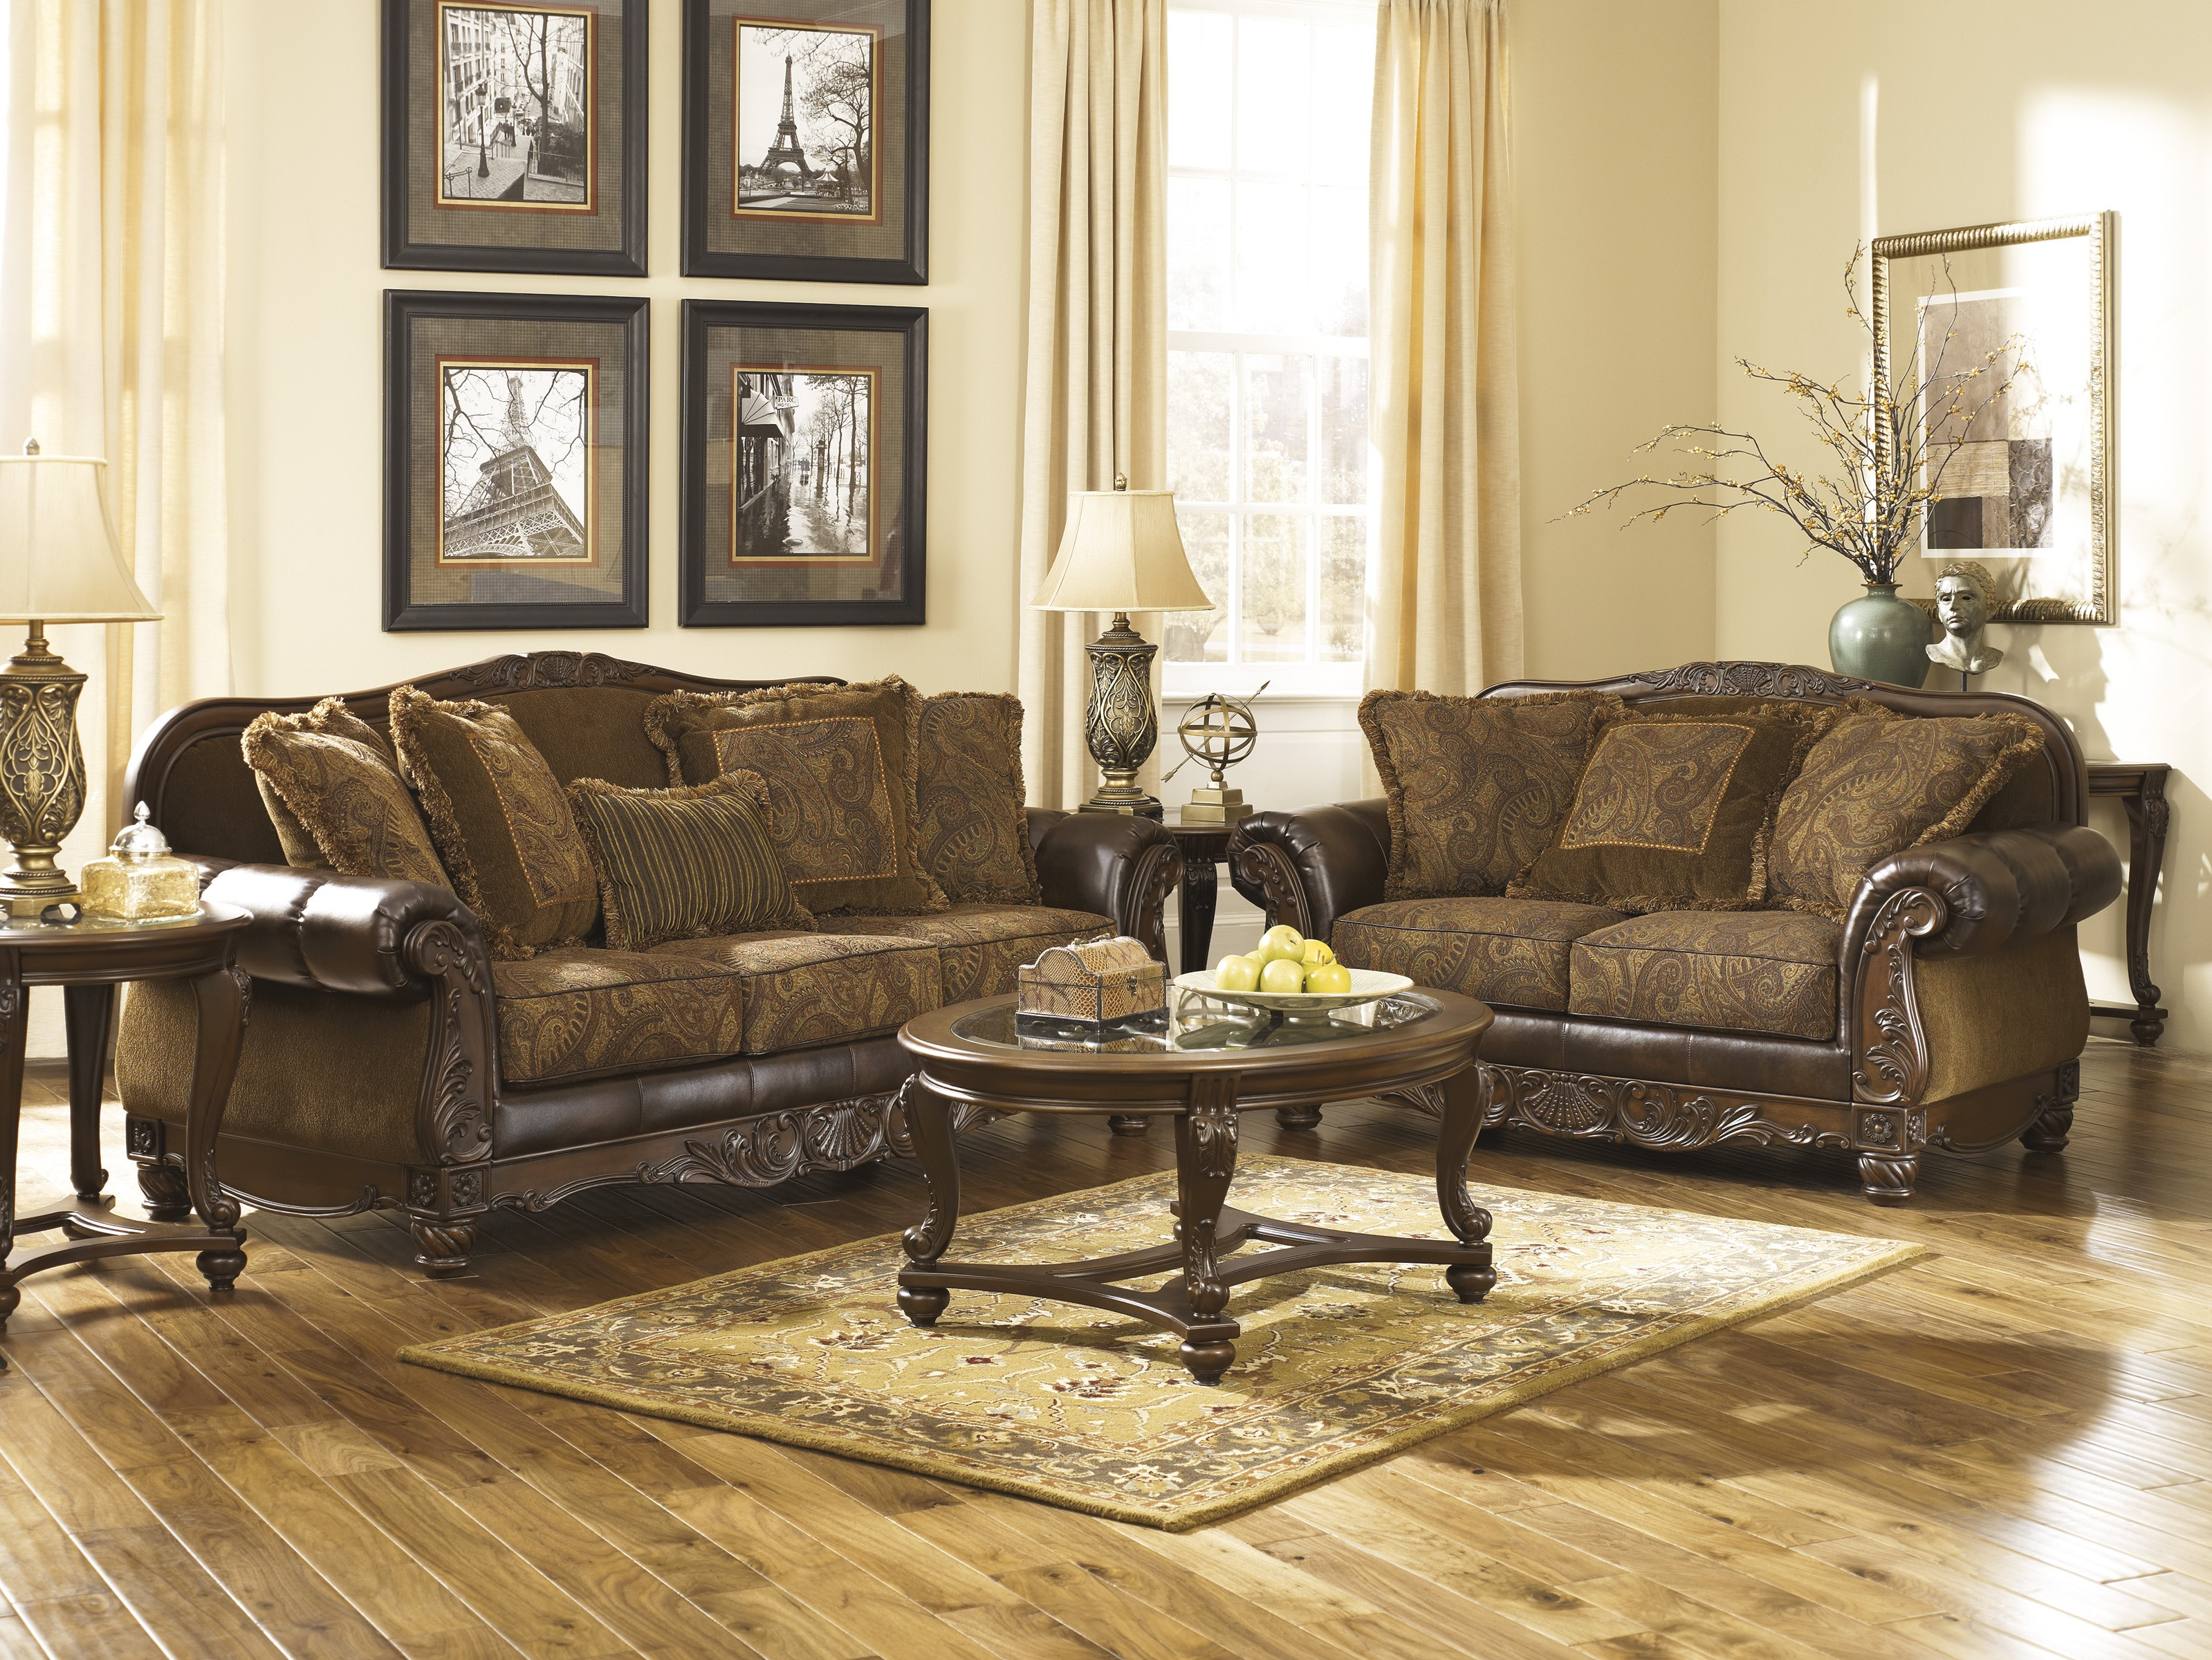 Comfy Ashley Furniture Tucson For Home Furniture With Ashley Furniture Tucson Az